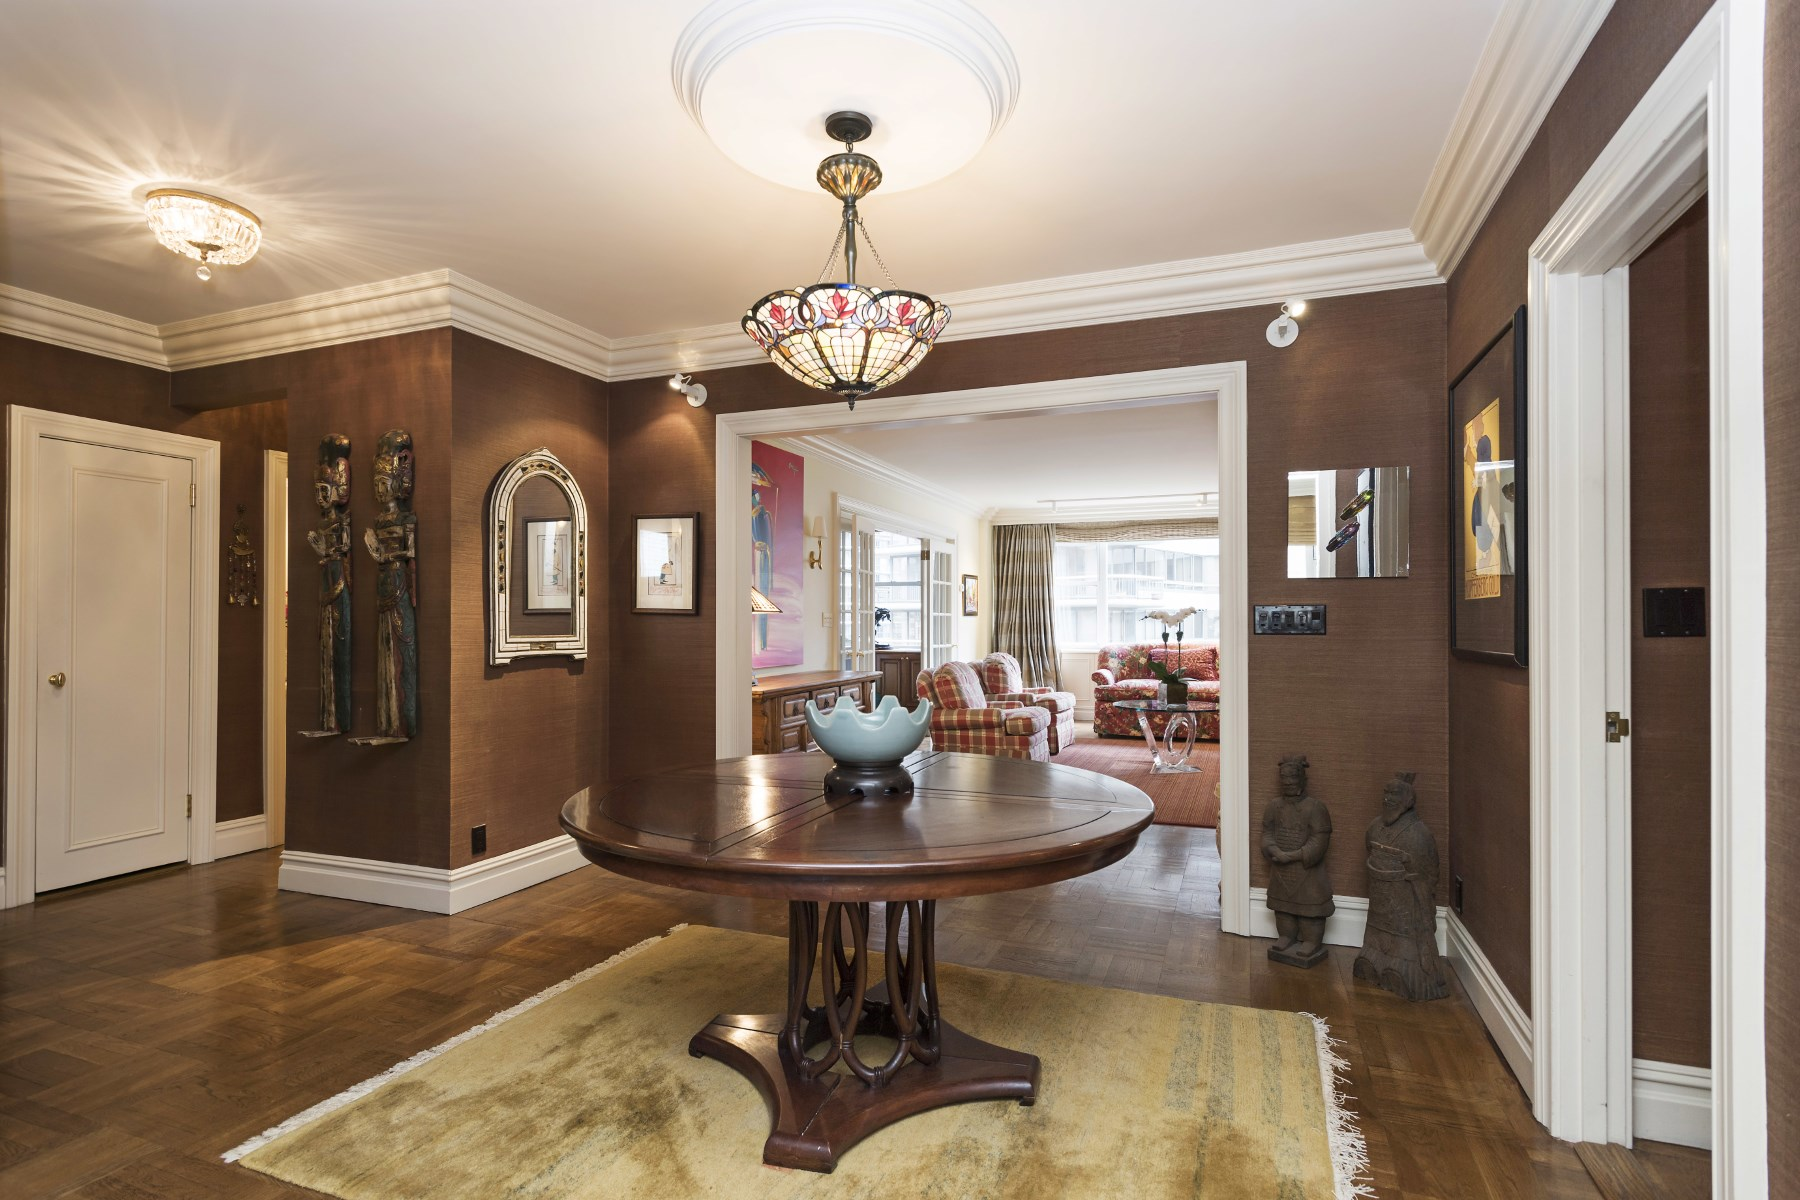 Co-op for Sale at Classic 7 Room Home 175 East 62nd Street Apt 9D Upper East Side, New York, New York, 10065 United States